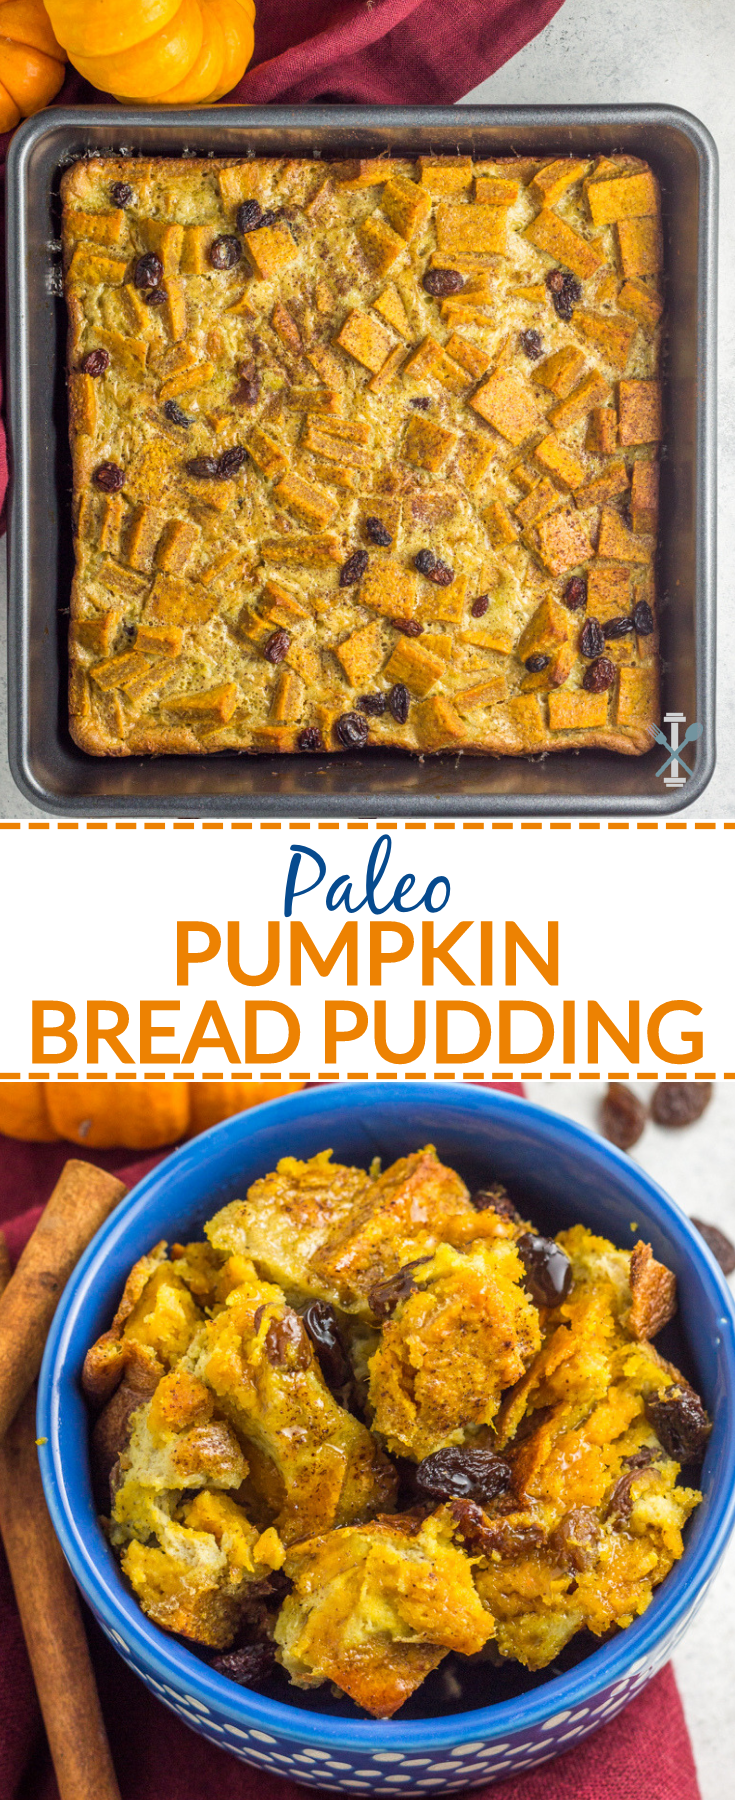 This grain free paleo pumpkin bead pudding is infused with major pumpkin flavor. It's the perfect naturally sweetened, gluten free, and dairy free treat